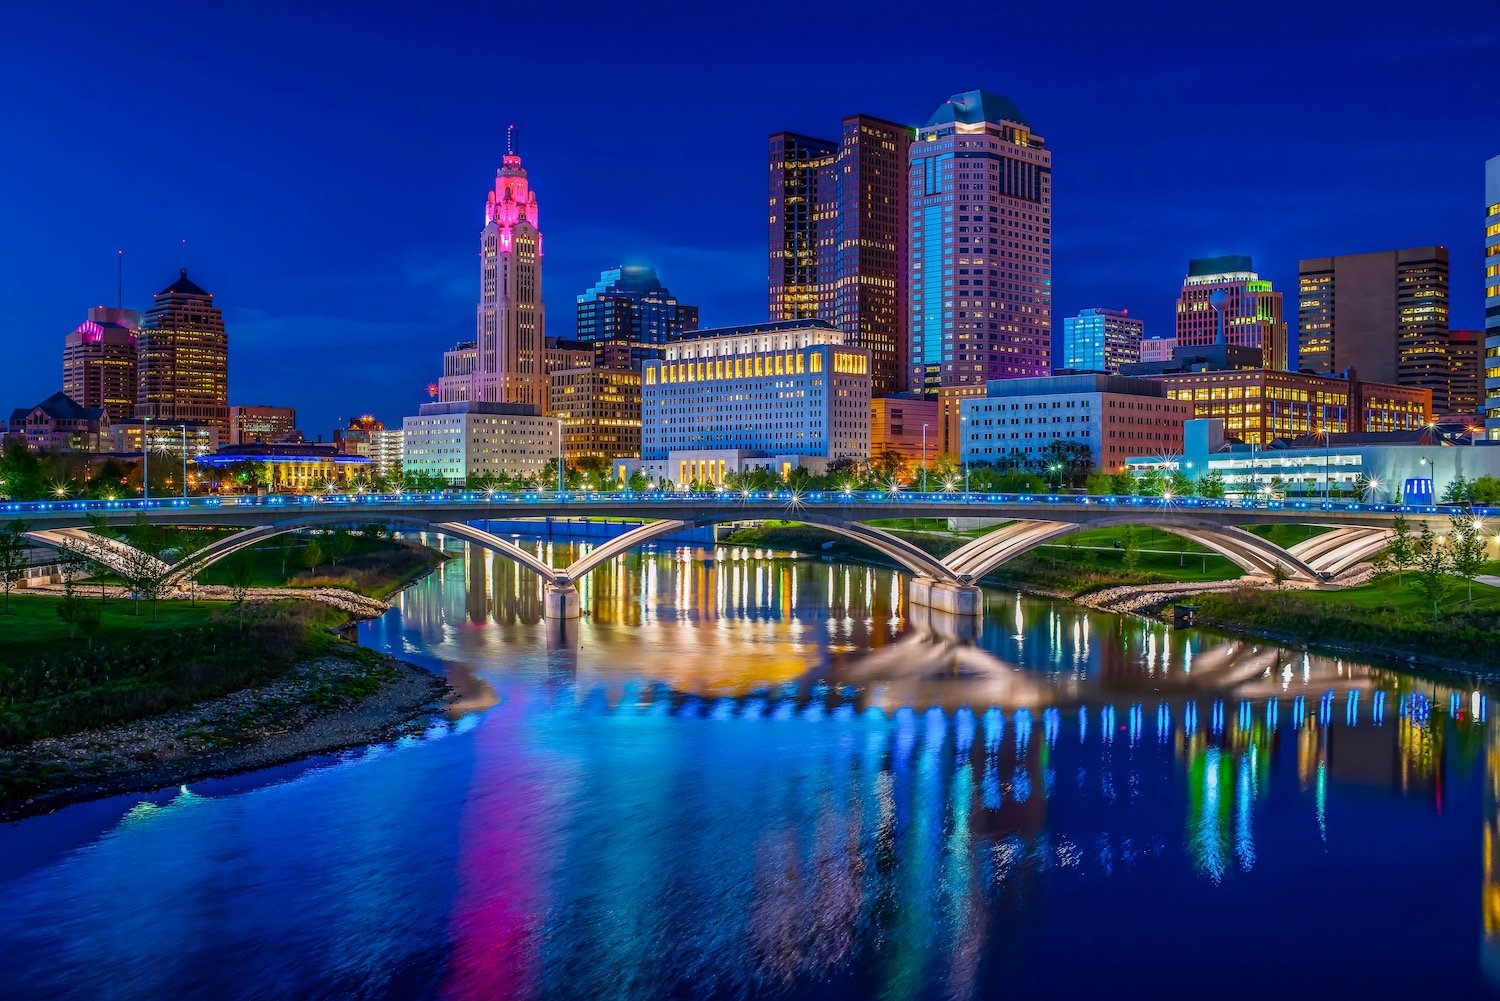 Columbus Ohio reflected in Scioto River at Sunset